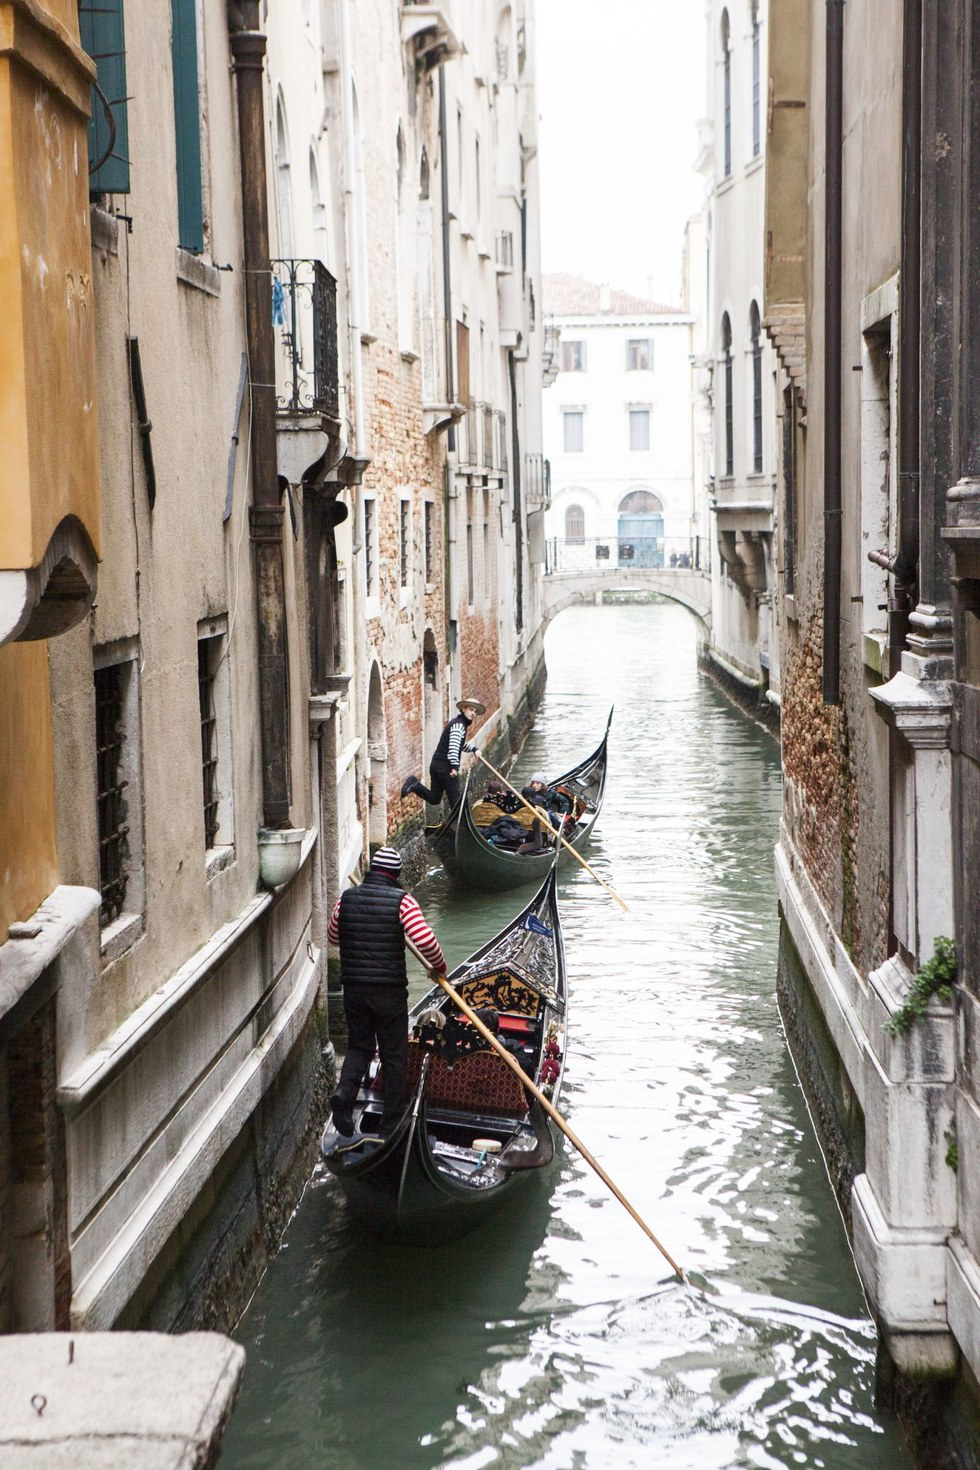 Taking the back route down a canal in Venice